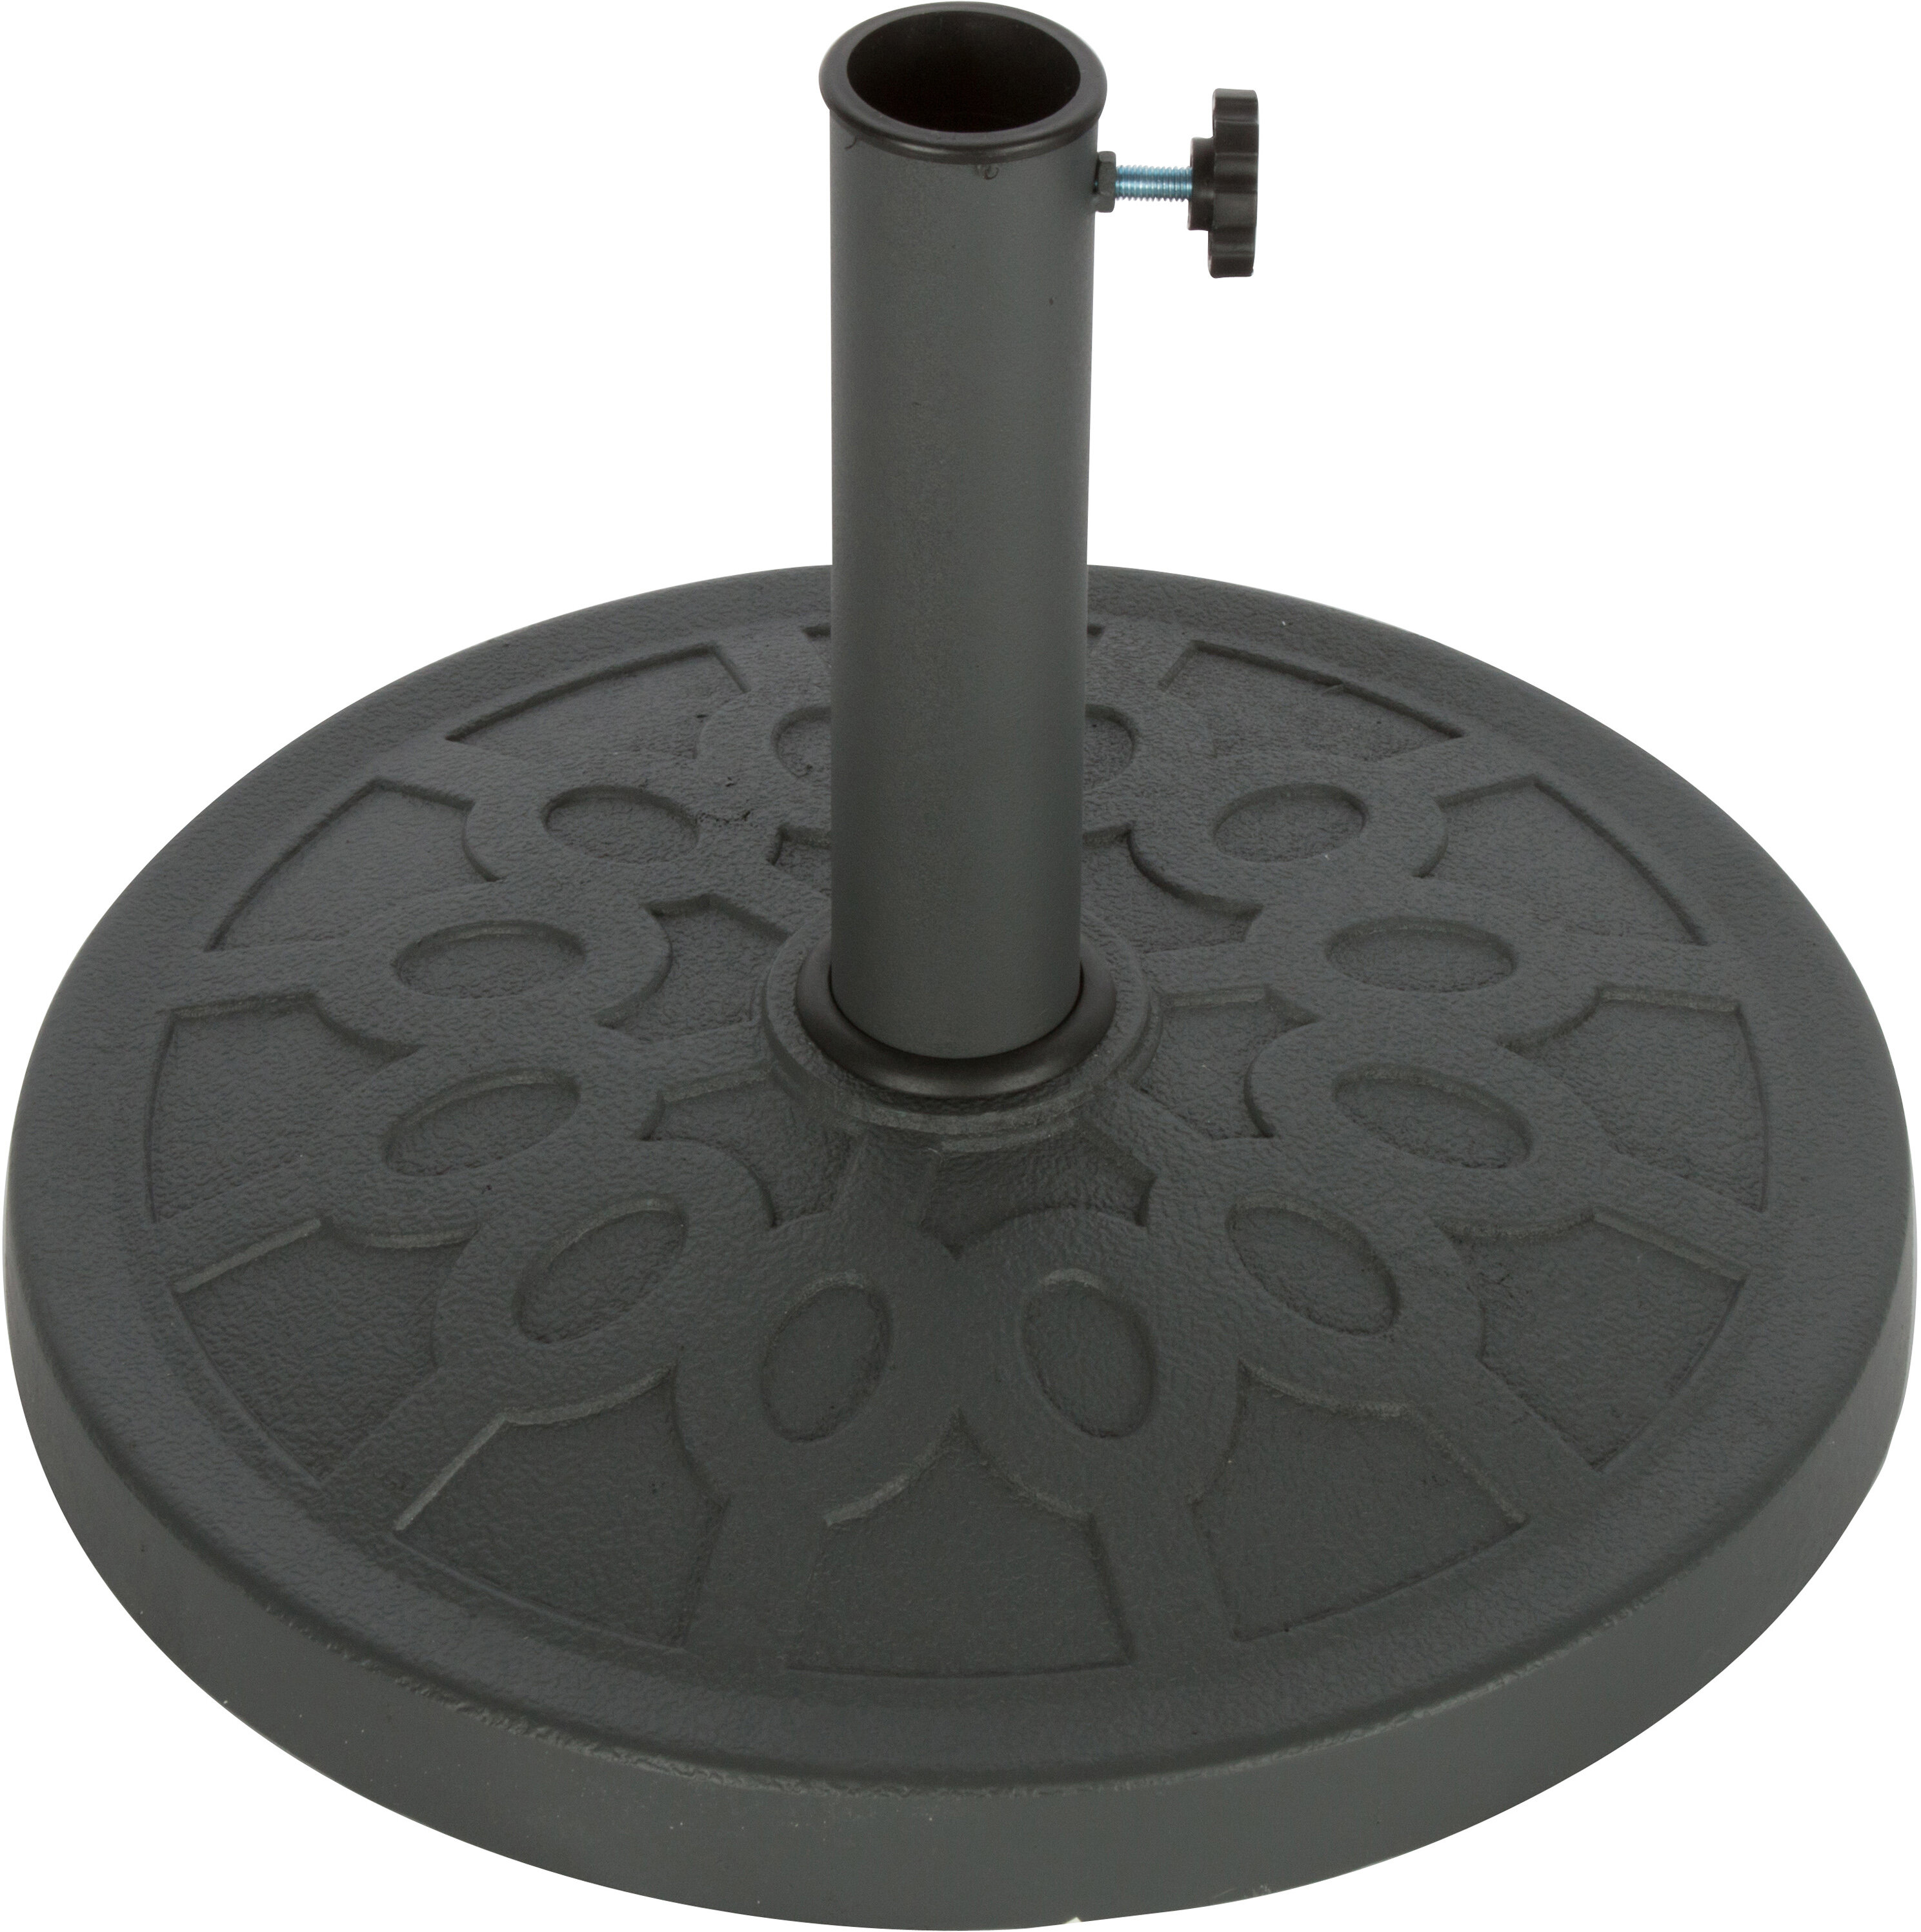 Resin Patio Umbrella Stands Bases You Ll Love In 2021 Wayfair